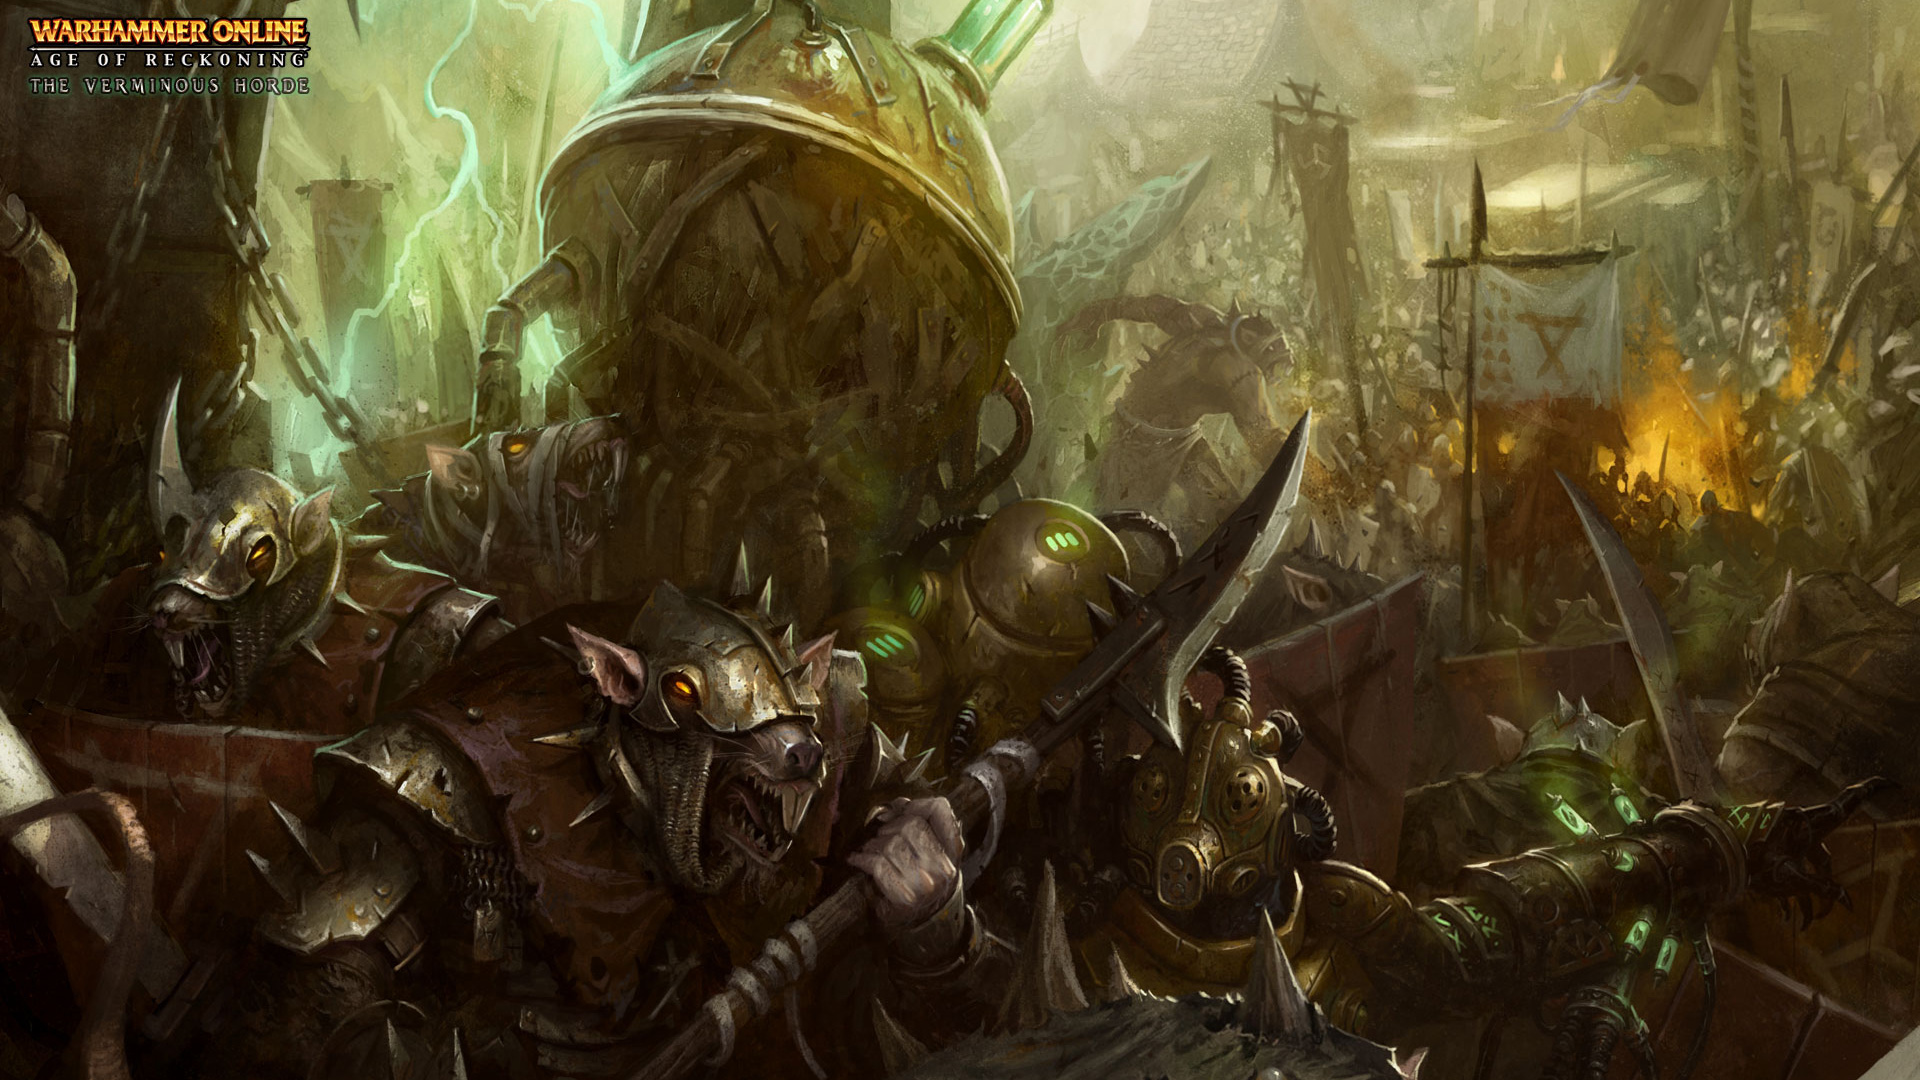 Free Warhammer Online: Age of Reckoning Wallpaper in 1920x1080